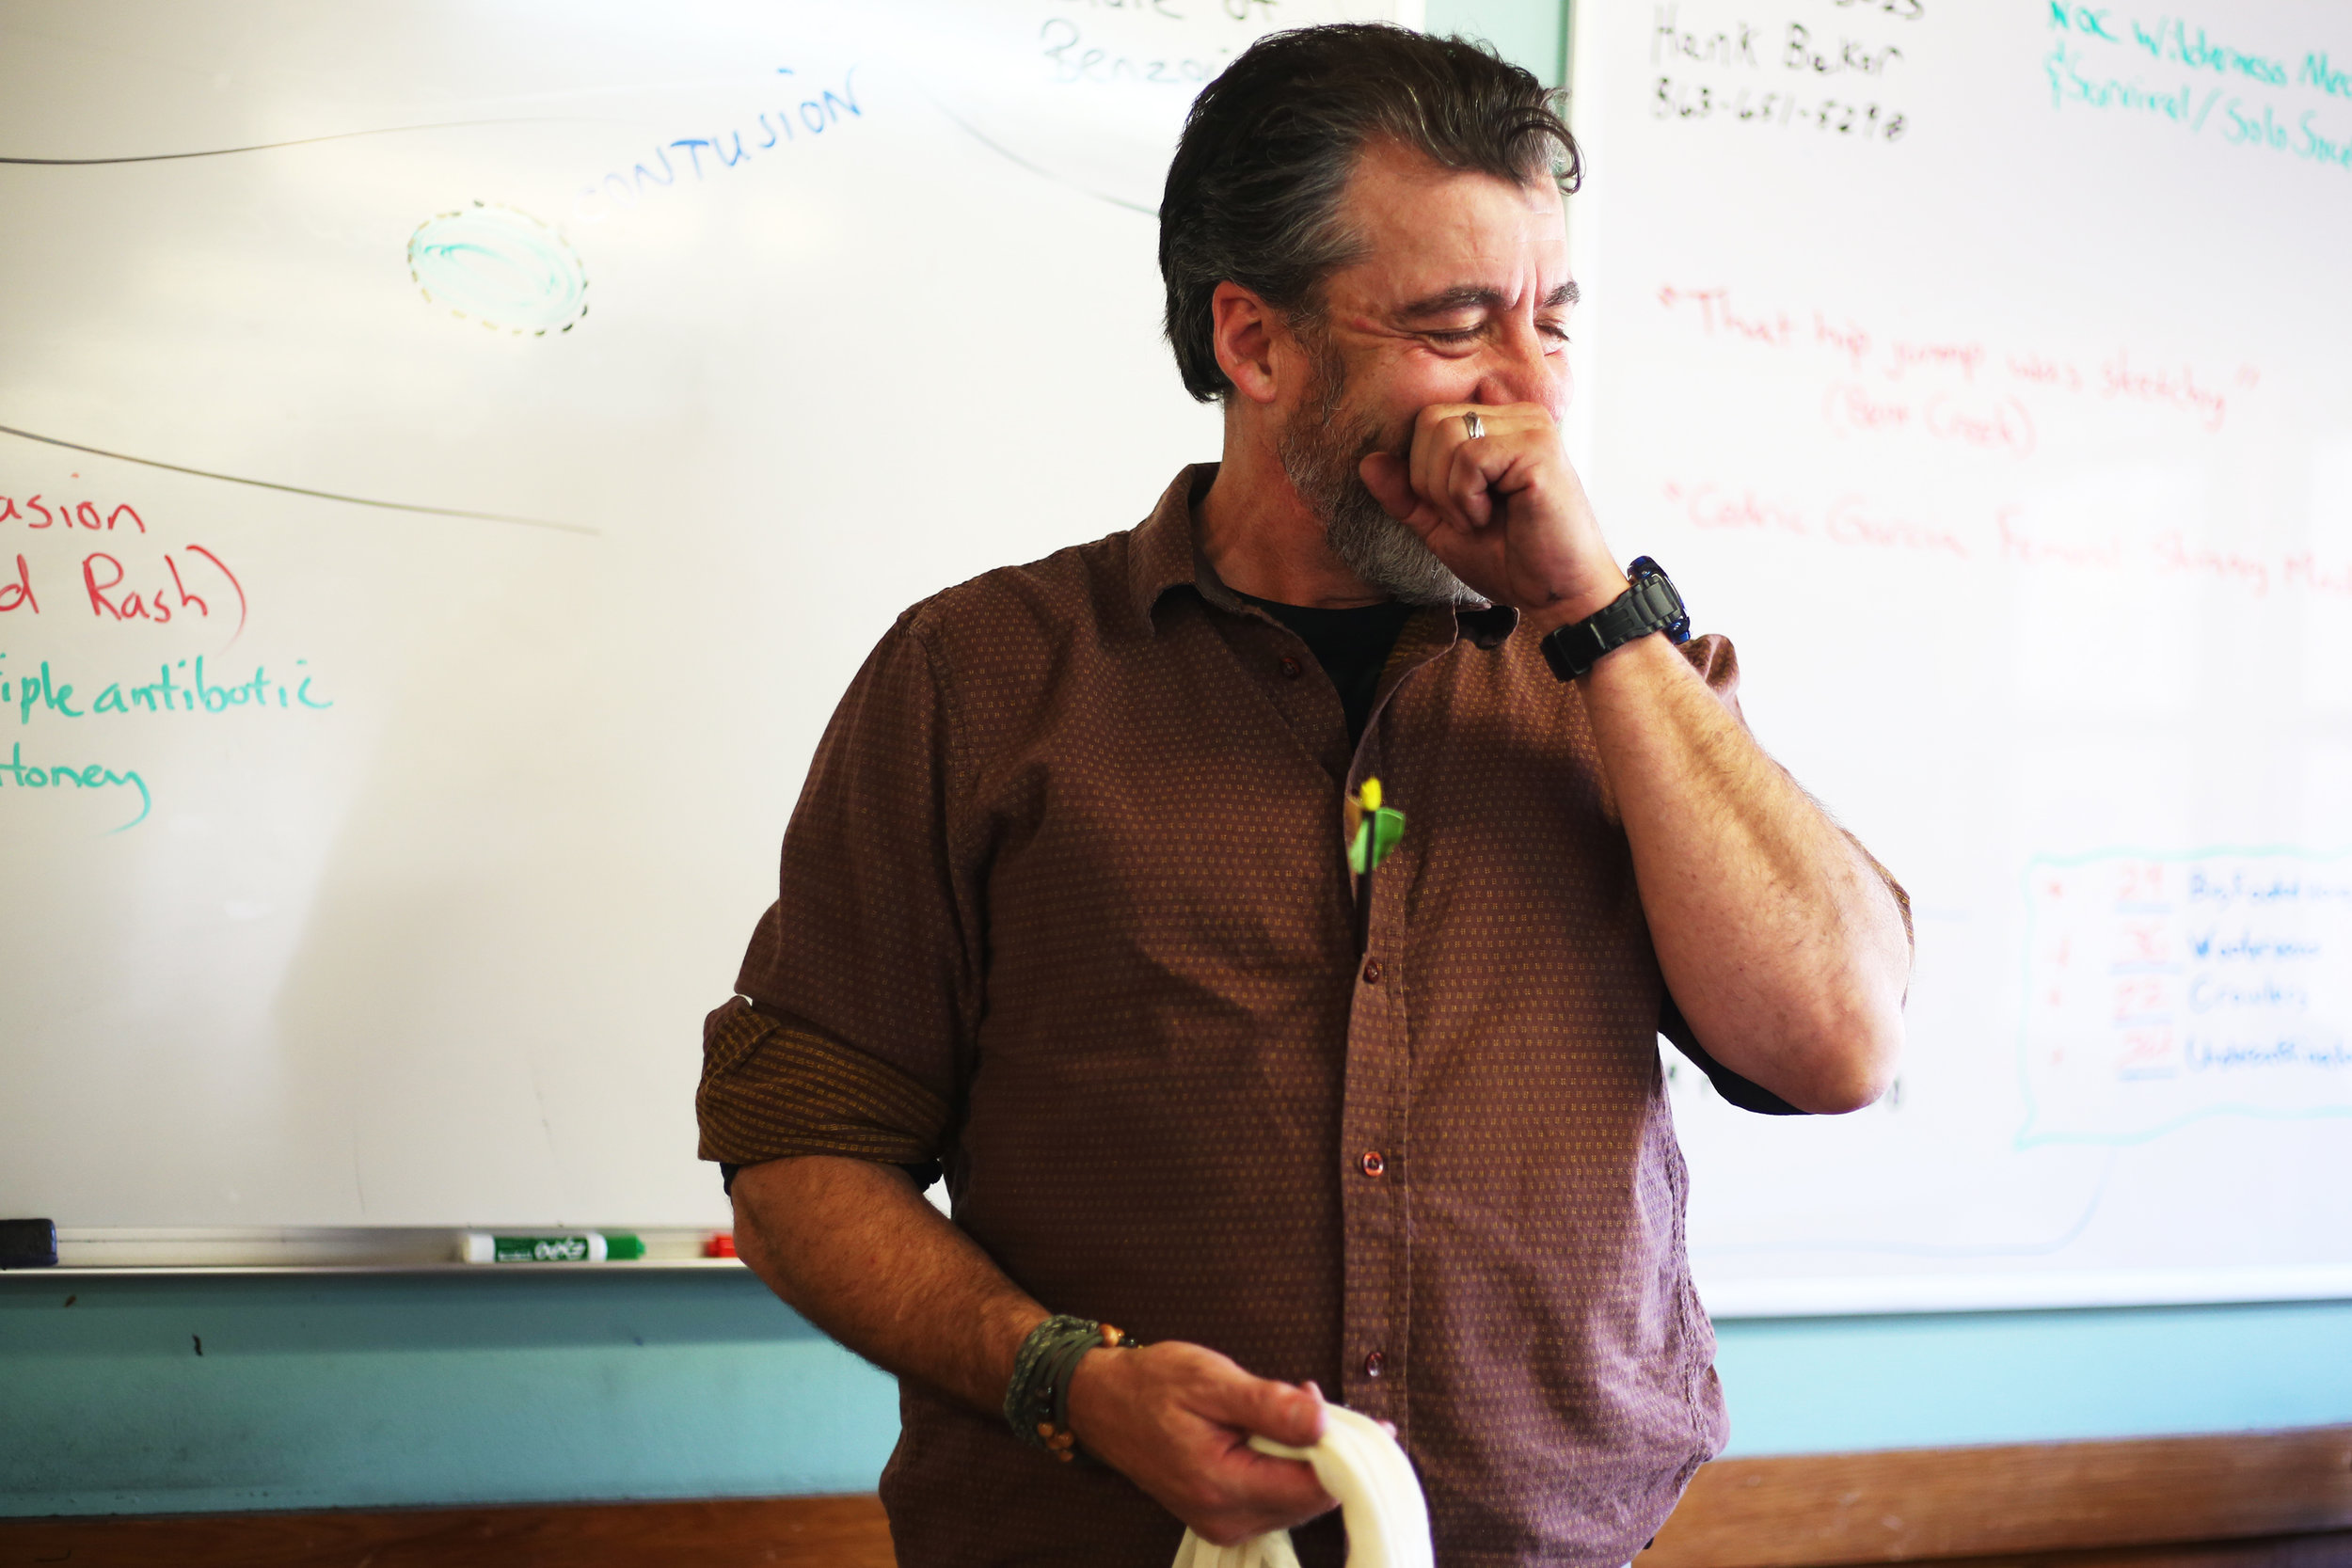 I promise it won't be boring!  Randy Manuel is a man of many professions and talents: experienced EMT, thorough instructor of wilderness medicine, and the best sense of humor this side of the Mississippi.